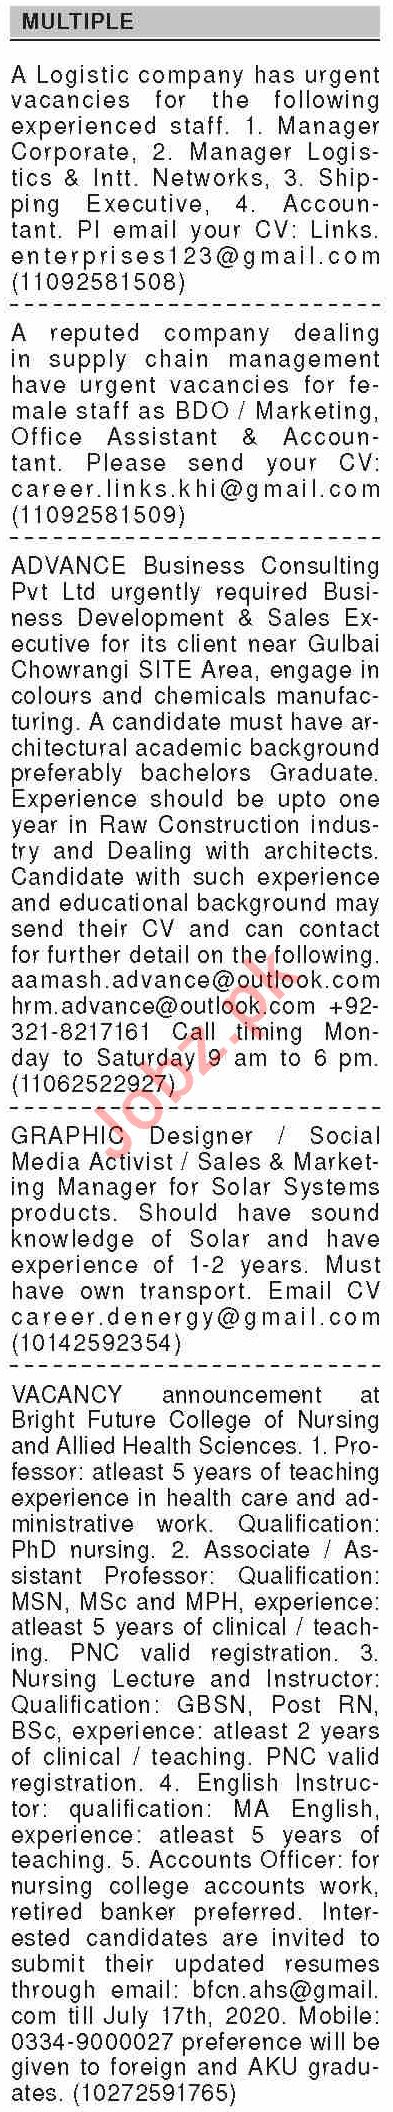 Dawn Sunday Classified Ads 5th July 2020 for Multiple Staff